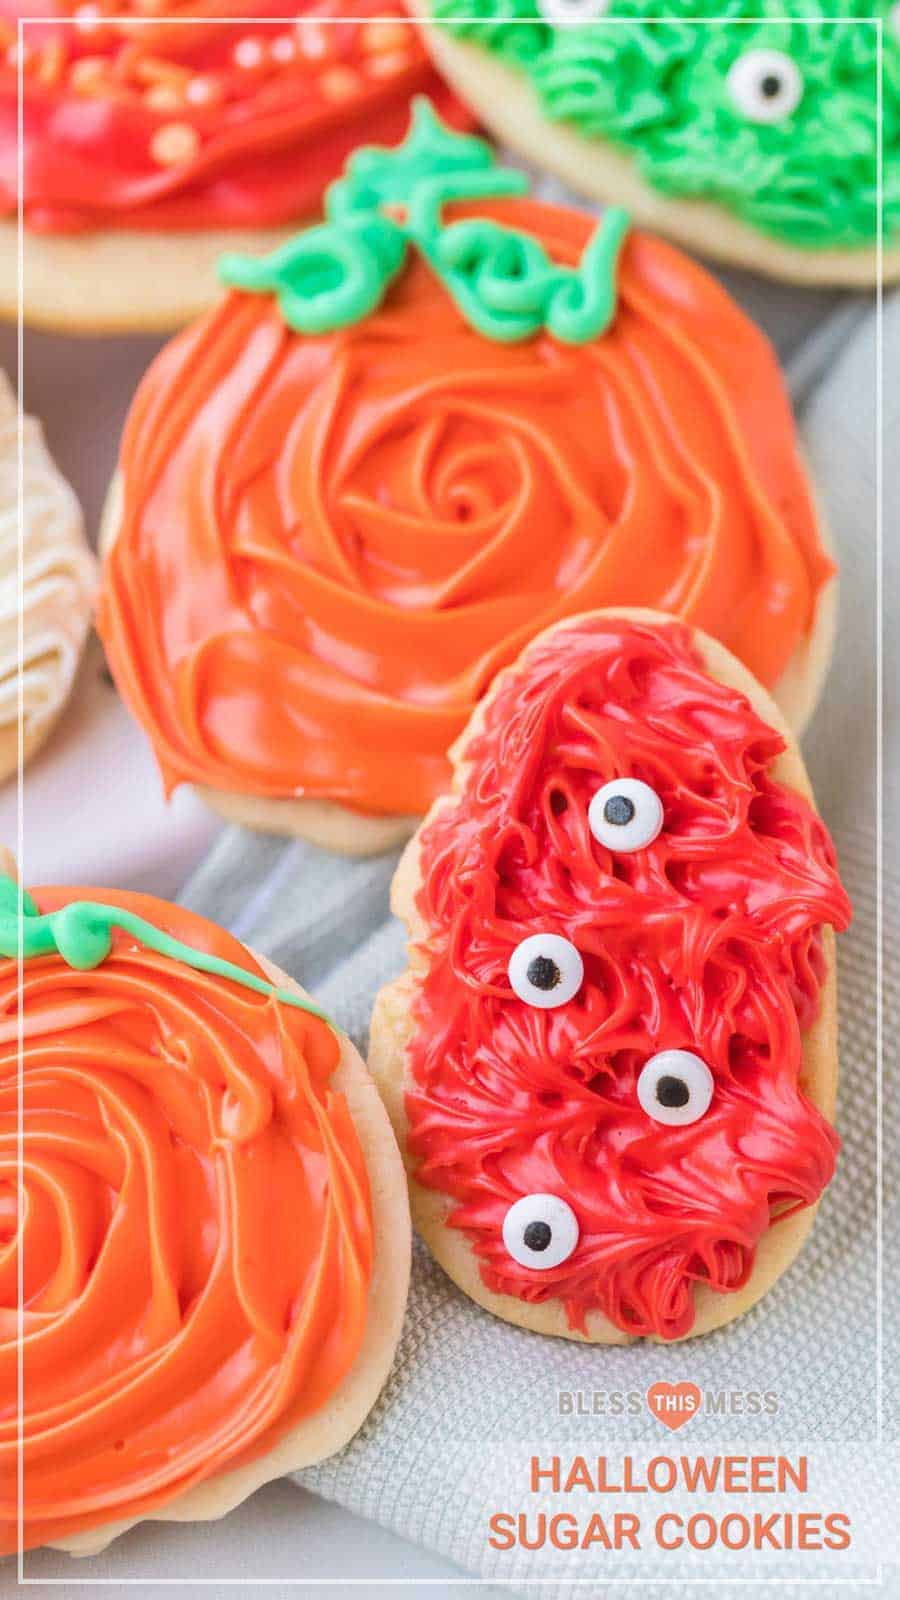 Halloween sugar cookies are adorable, soft, and sweet cookies that are sure to create wonderful memories baking with your family and festive treats for this spooky holiday! As a lover of sweets, I'm of the firm belief that sugar cookies aren't just for Christmas, and candy isn't just for Halloween! Celebrate this fun (and sometimes spooky) holiday by baking a big batch of these festive sugar cookies with your loved ones this Halloween season! #sugarcookies #cookies #halloweensugarcookies